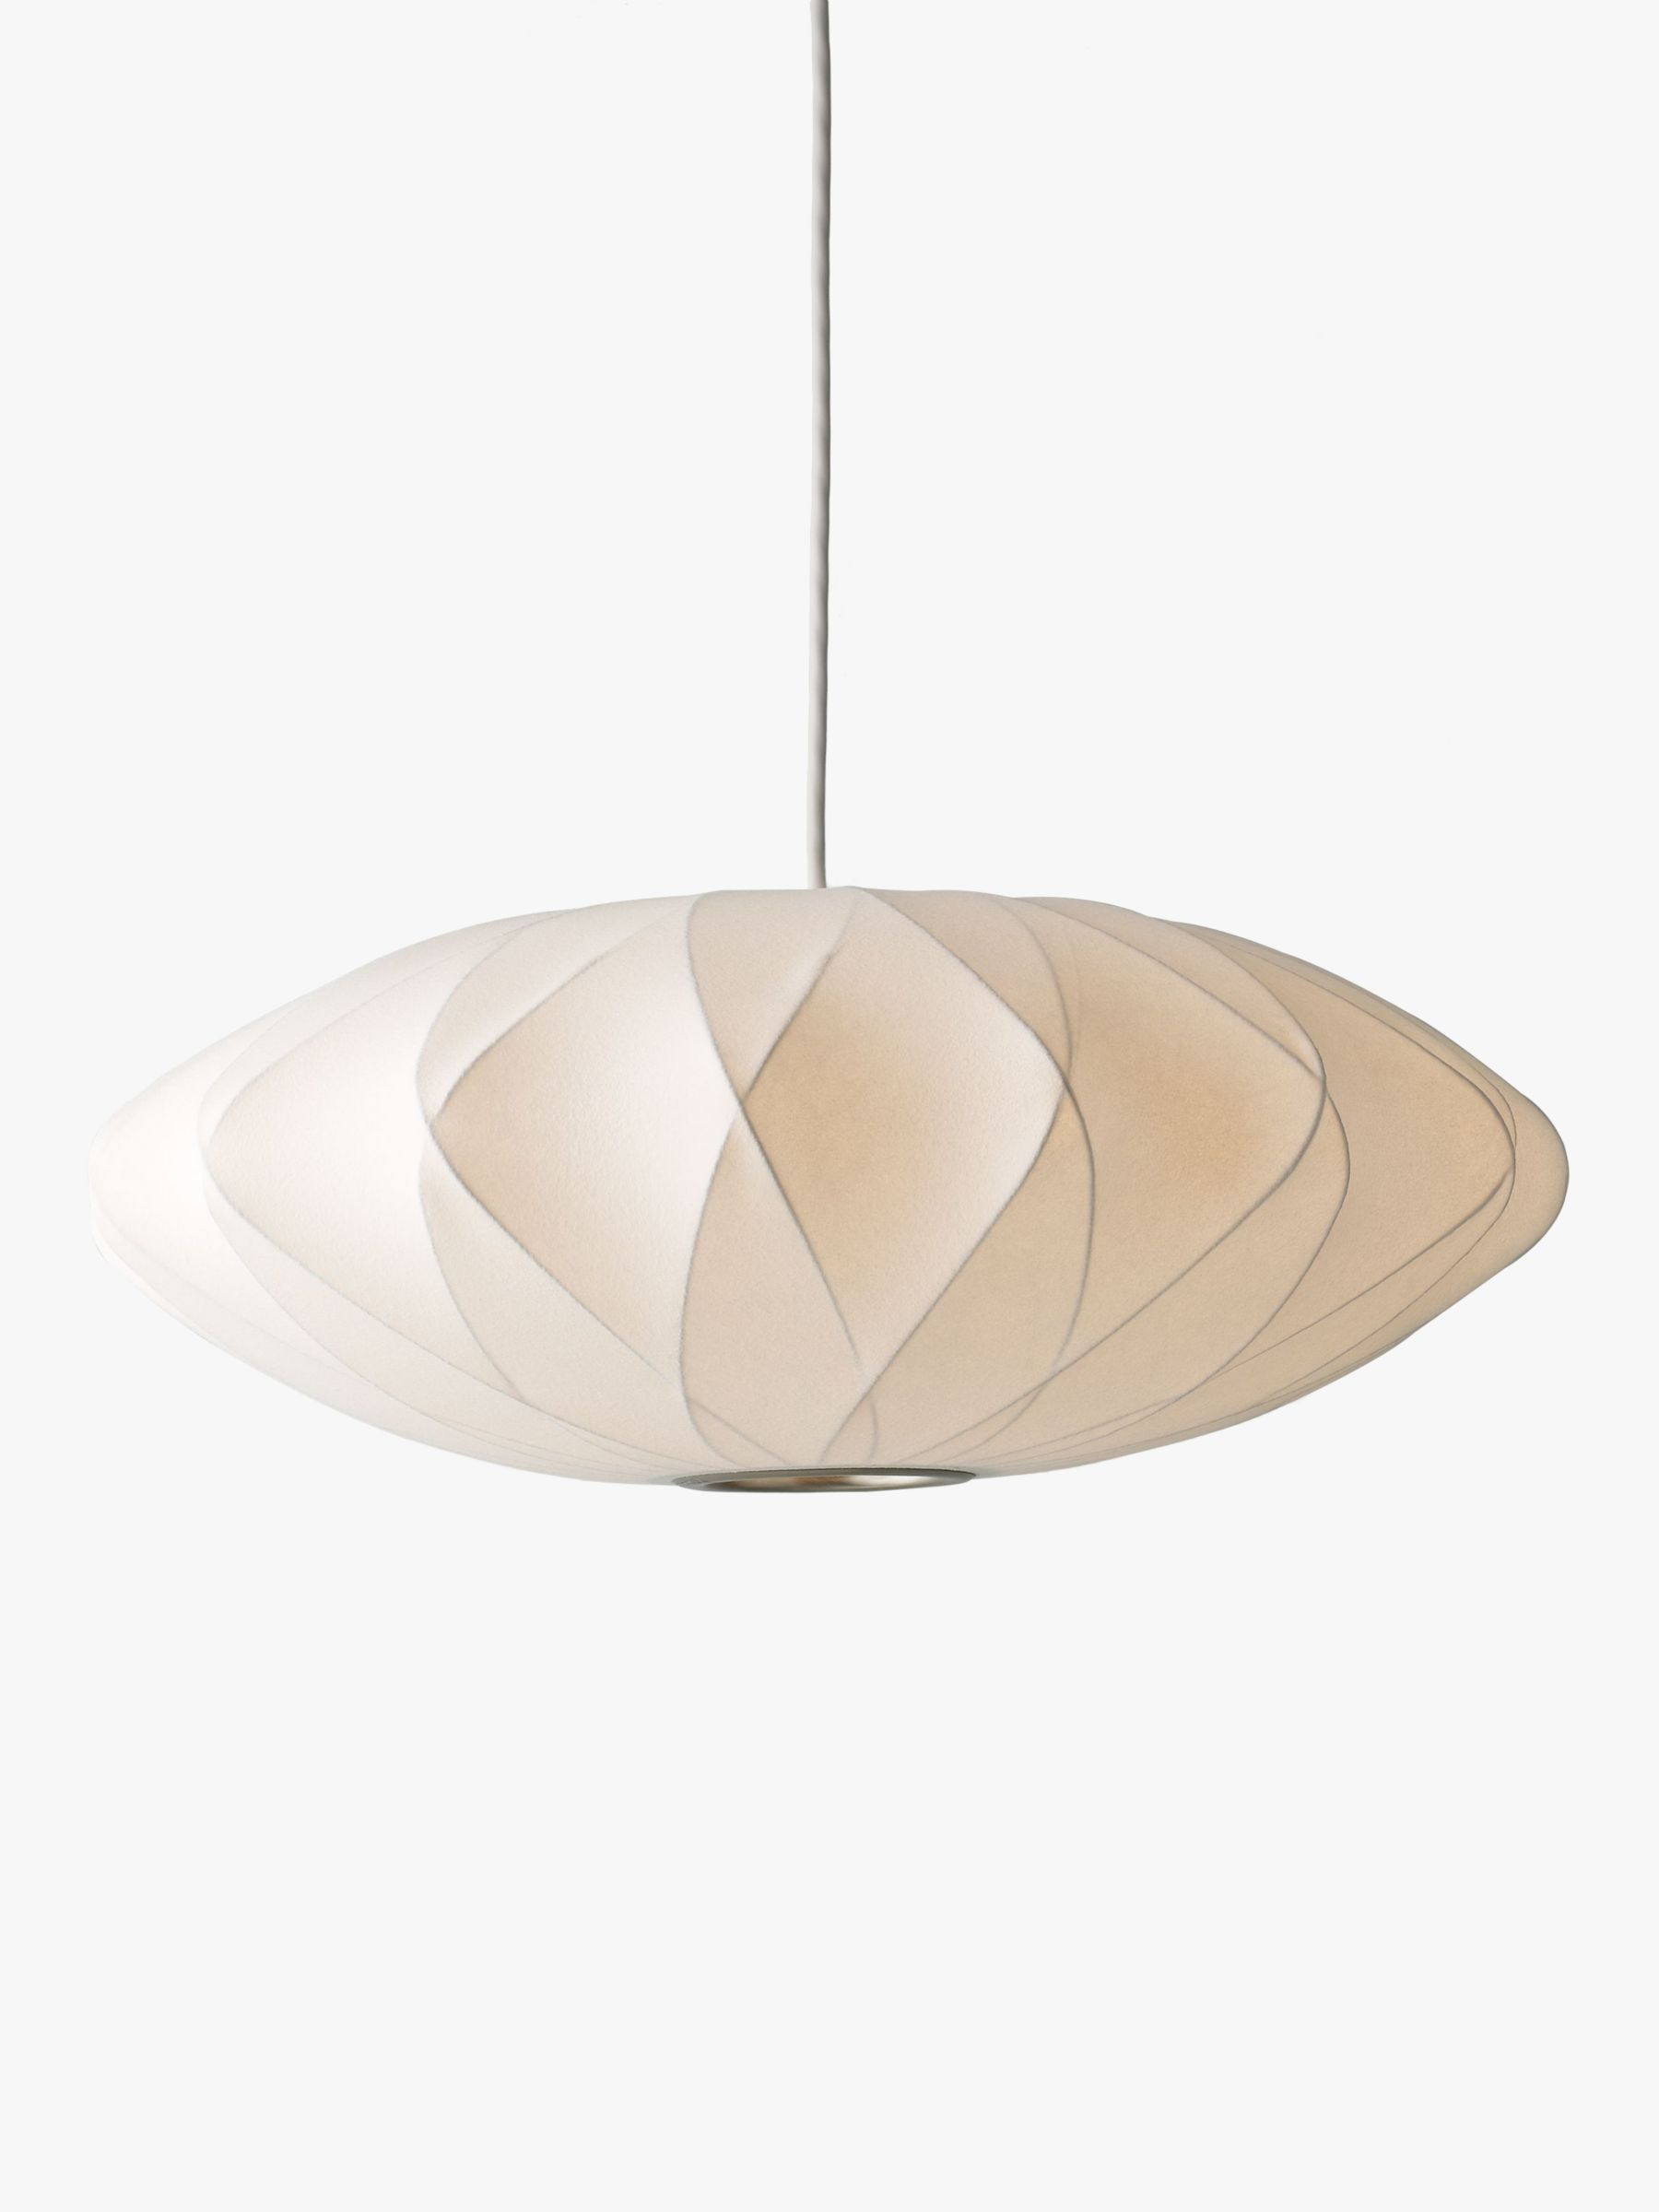 Herman Miller Herman Miller Bubble Crisscross Saucer Ceiling Light, Medium